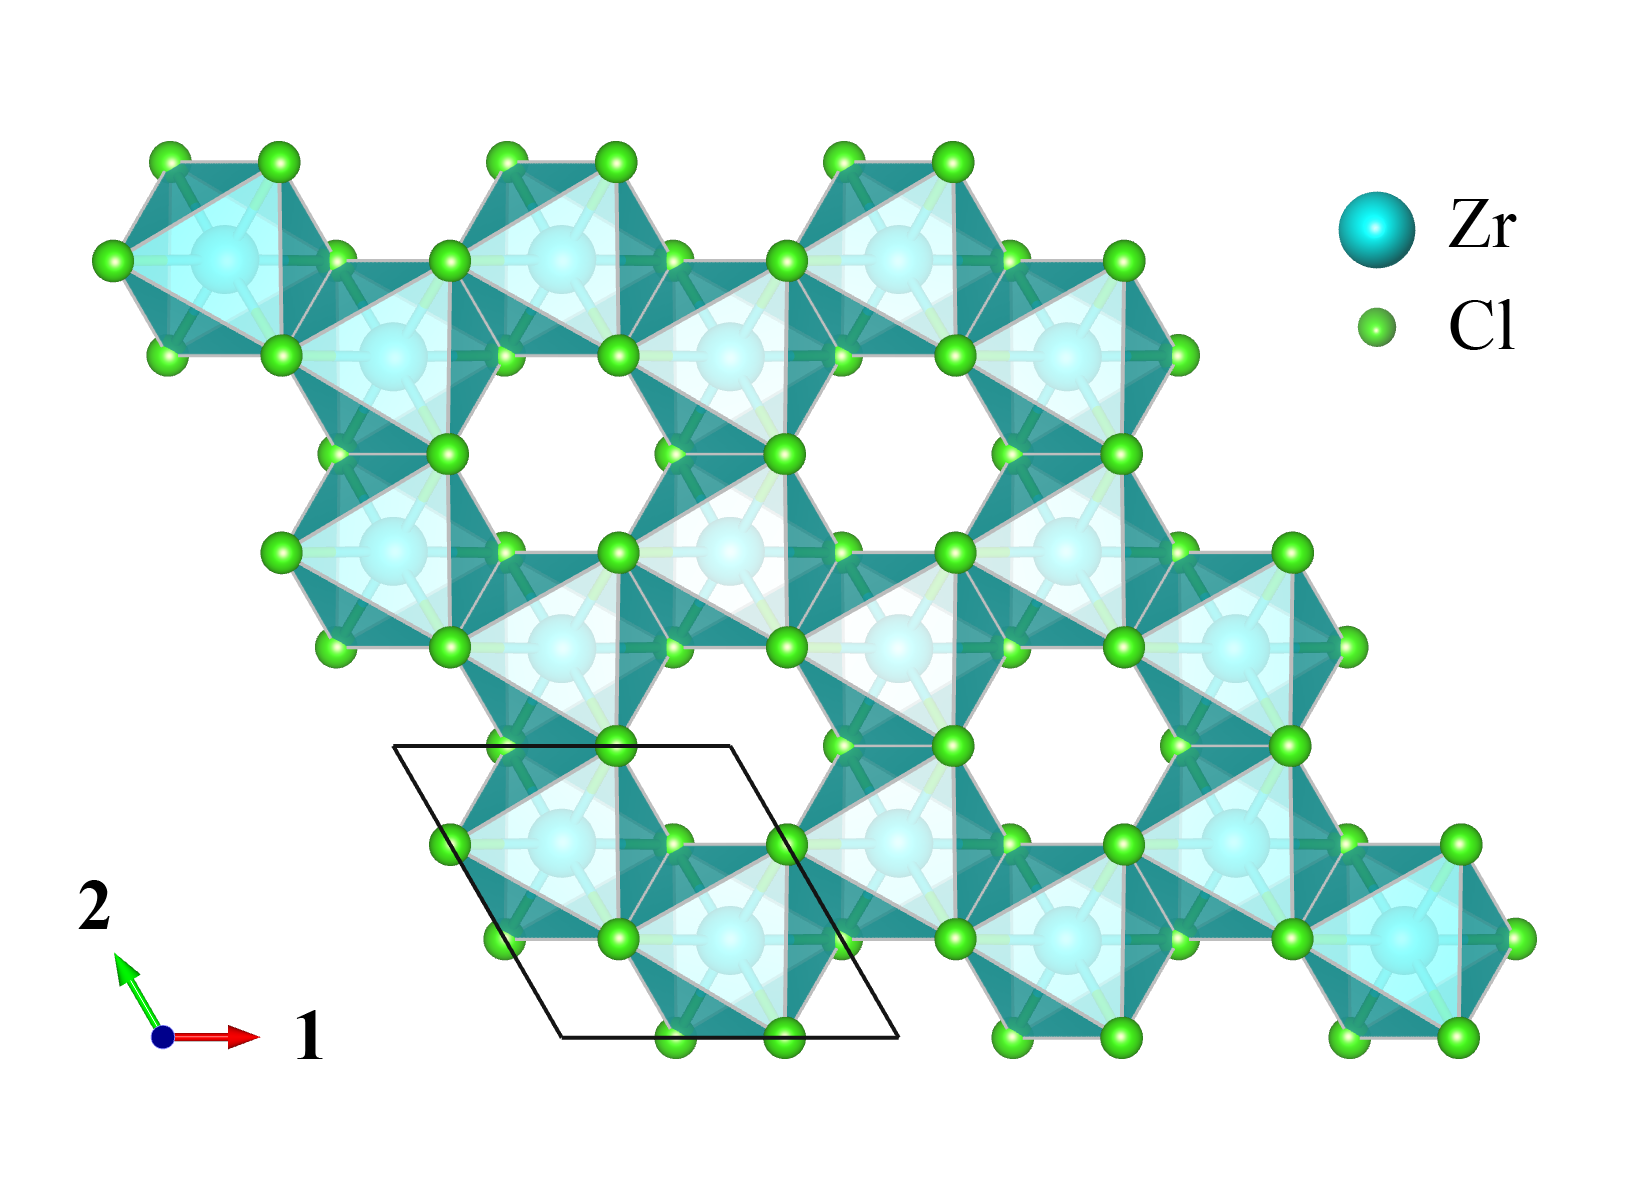 A lattice of blue and green hexagon shapes